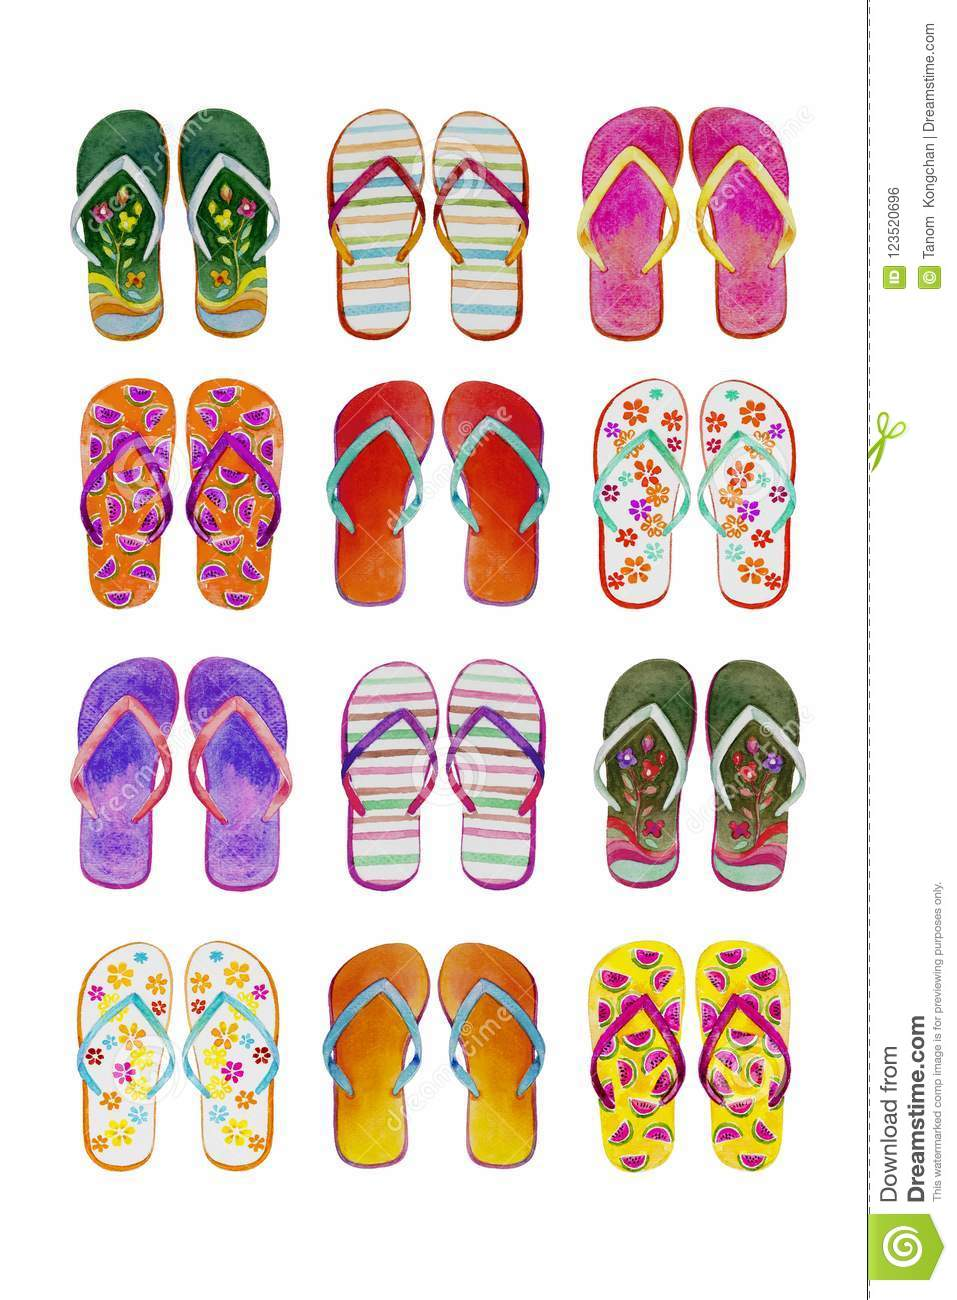 391236a6a8dd Royalty-Free Illustration. Summer flip flops set of colorful isolated